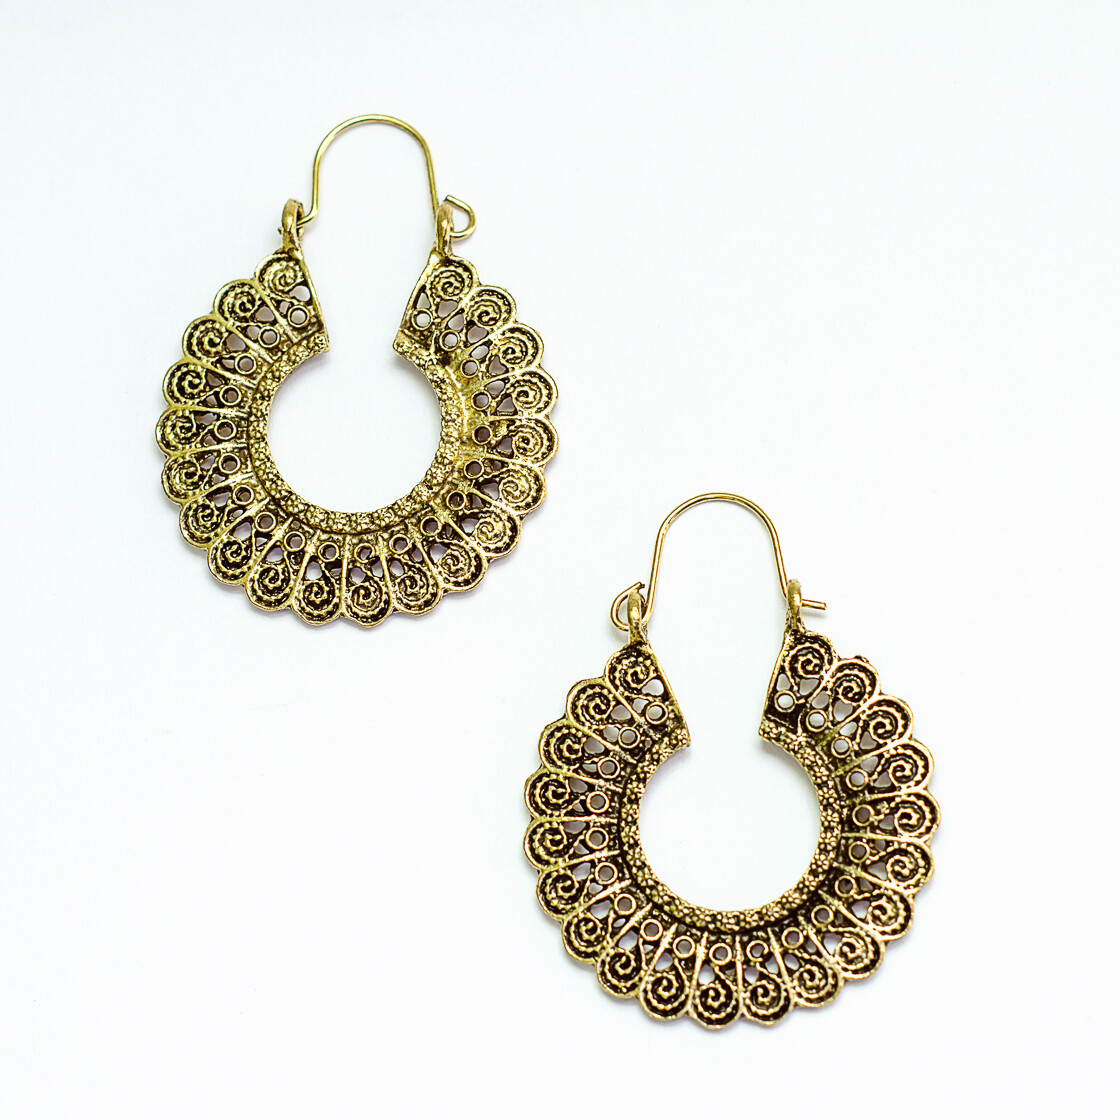 Antique Earrings 1 - BLACKDOLL ACCESSORIES